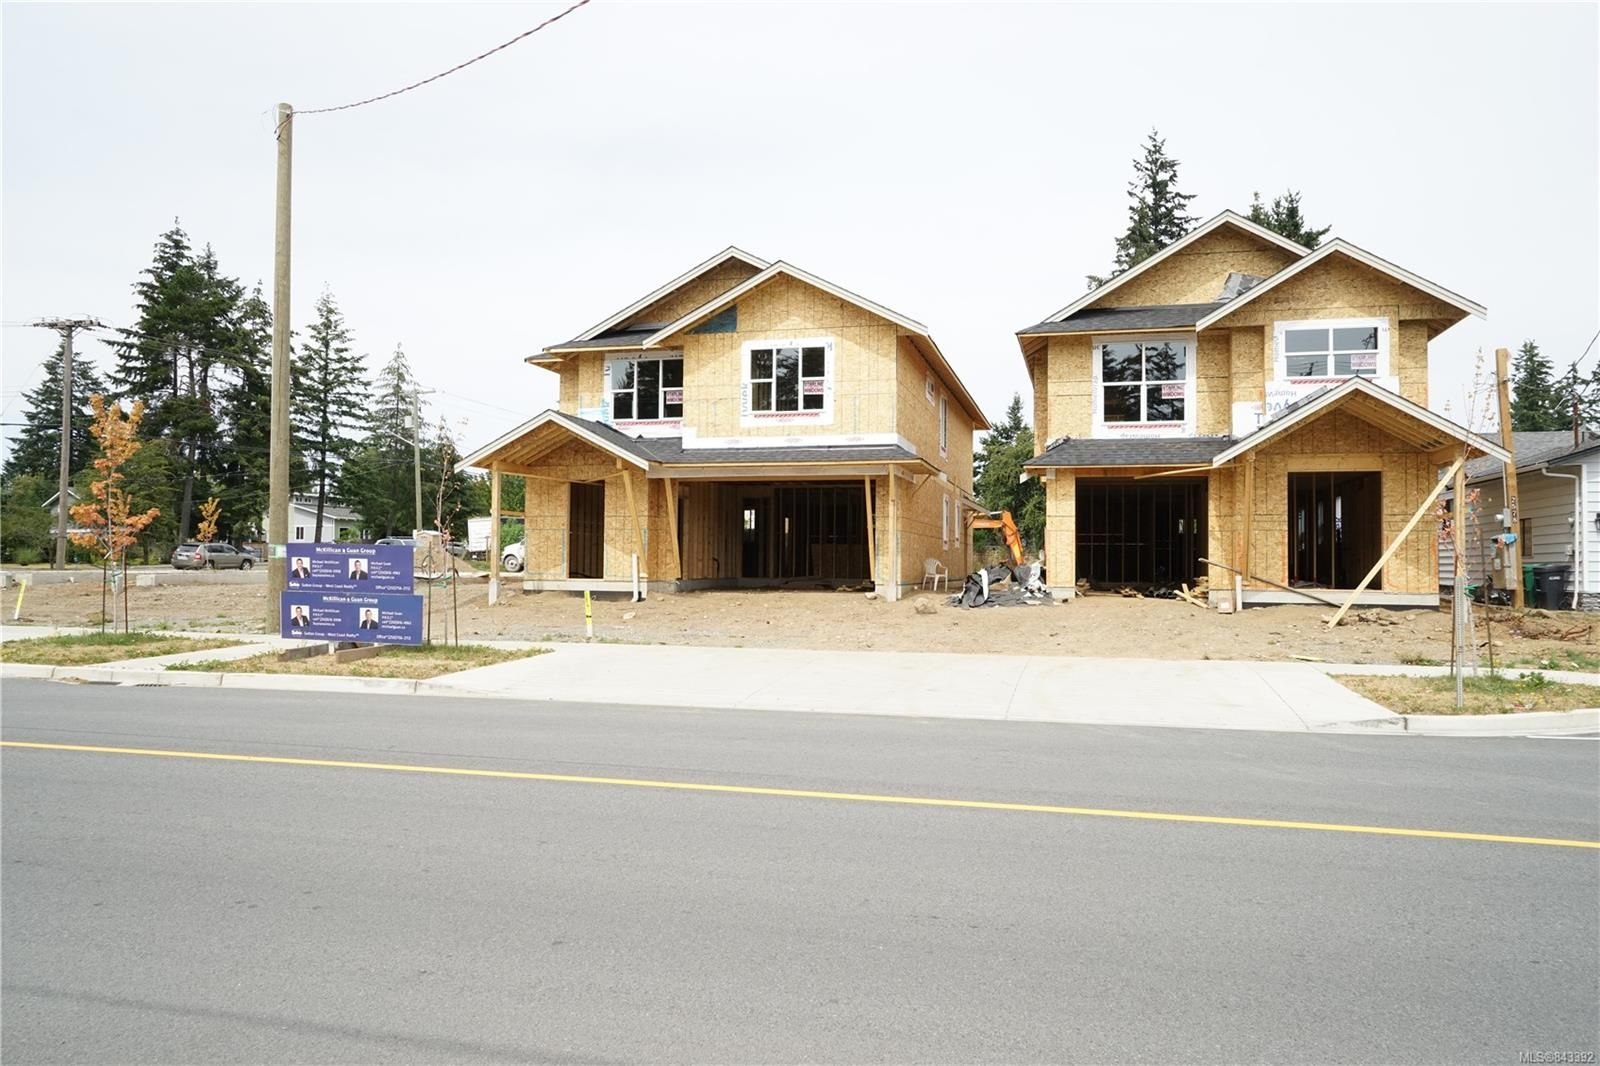 Photo 6: Photos: 2584 Rosstown Rd in NANAIMO: Na Diver Lake House for sale (Nanaimo)  : MLS®# 843392